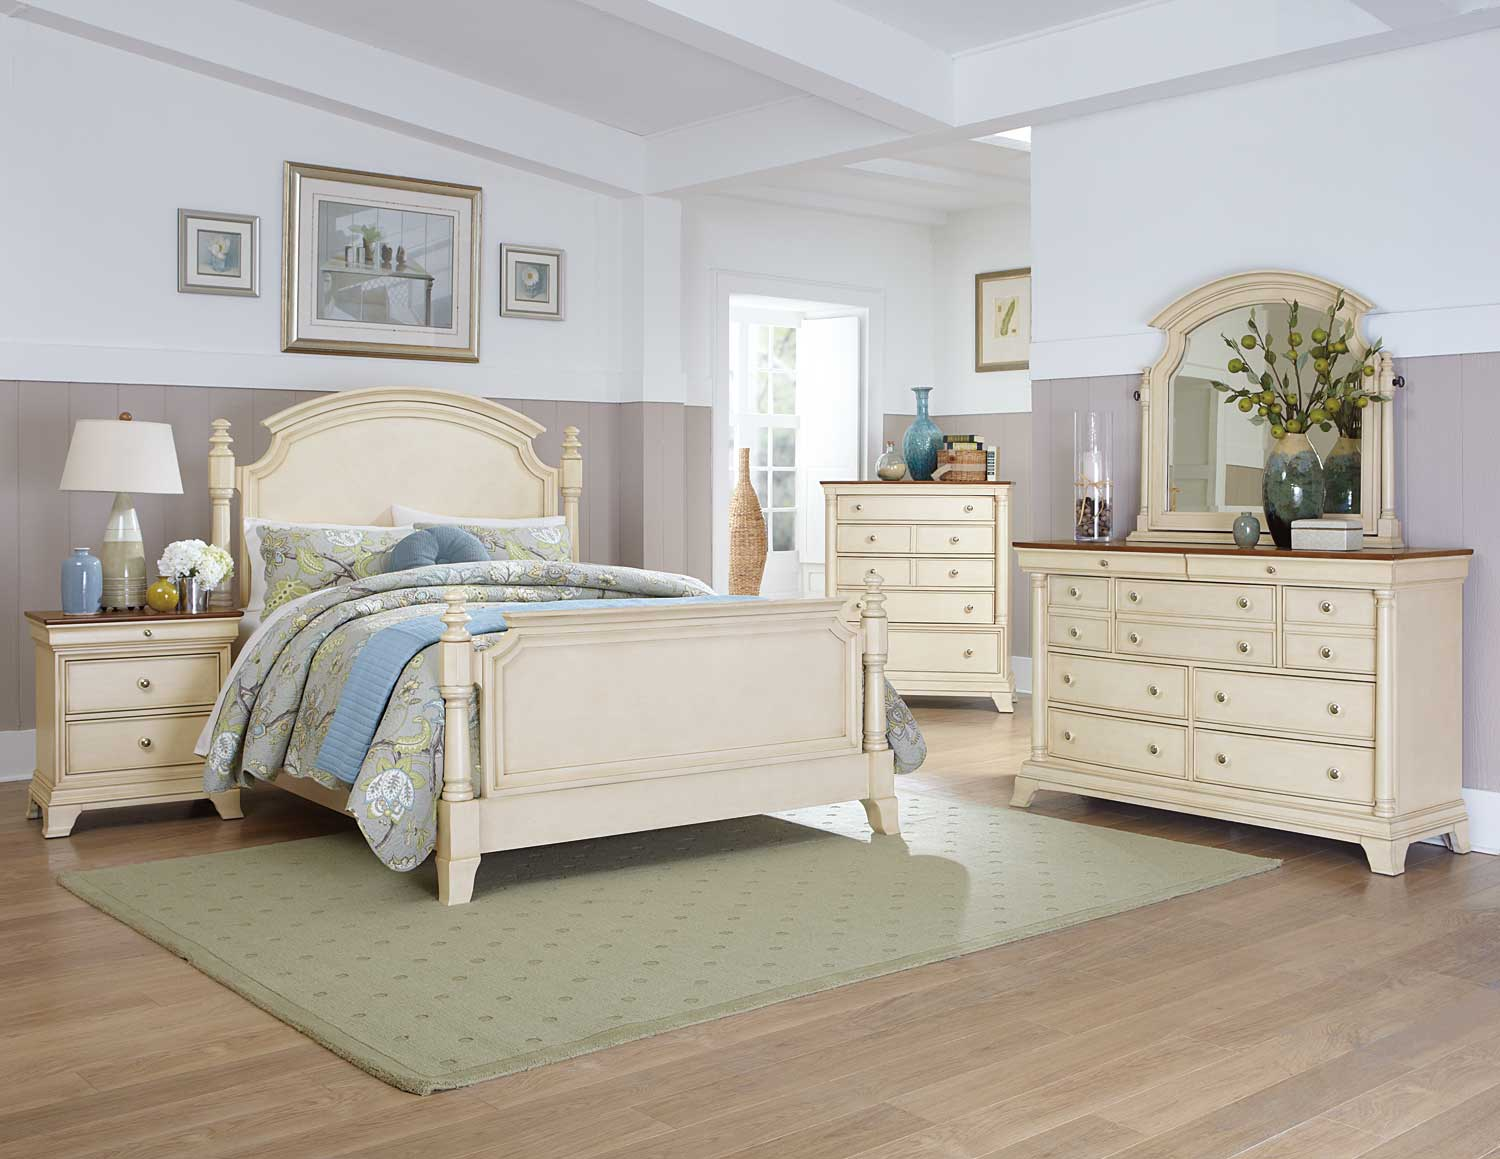 Homelegance inglewood ii bedroom set white b1402w bed for White wood bedroom furniture